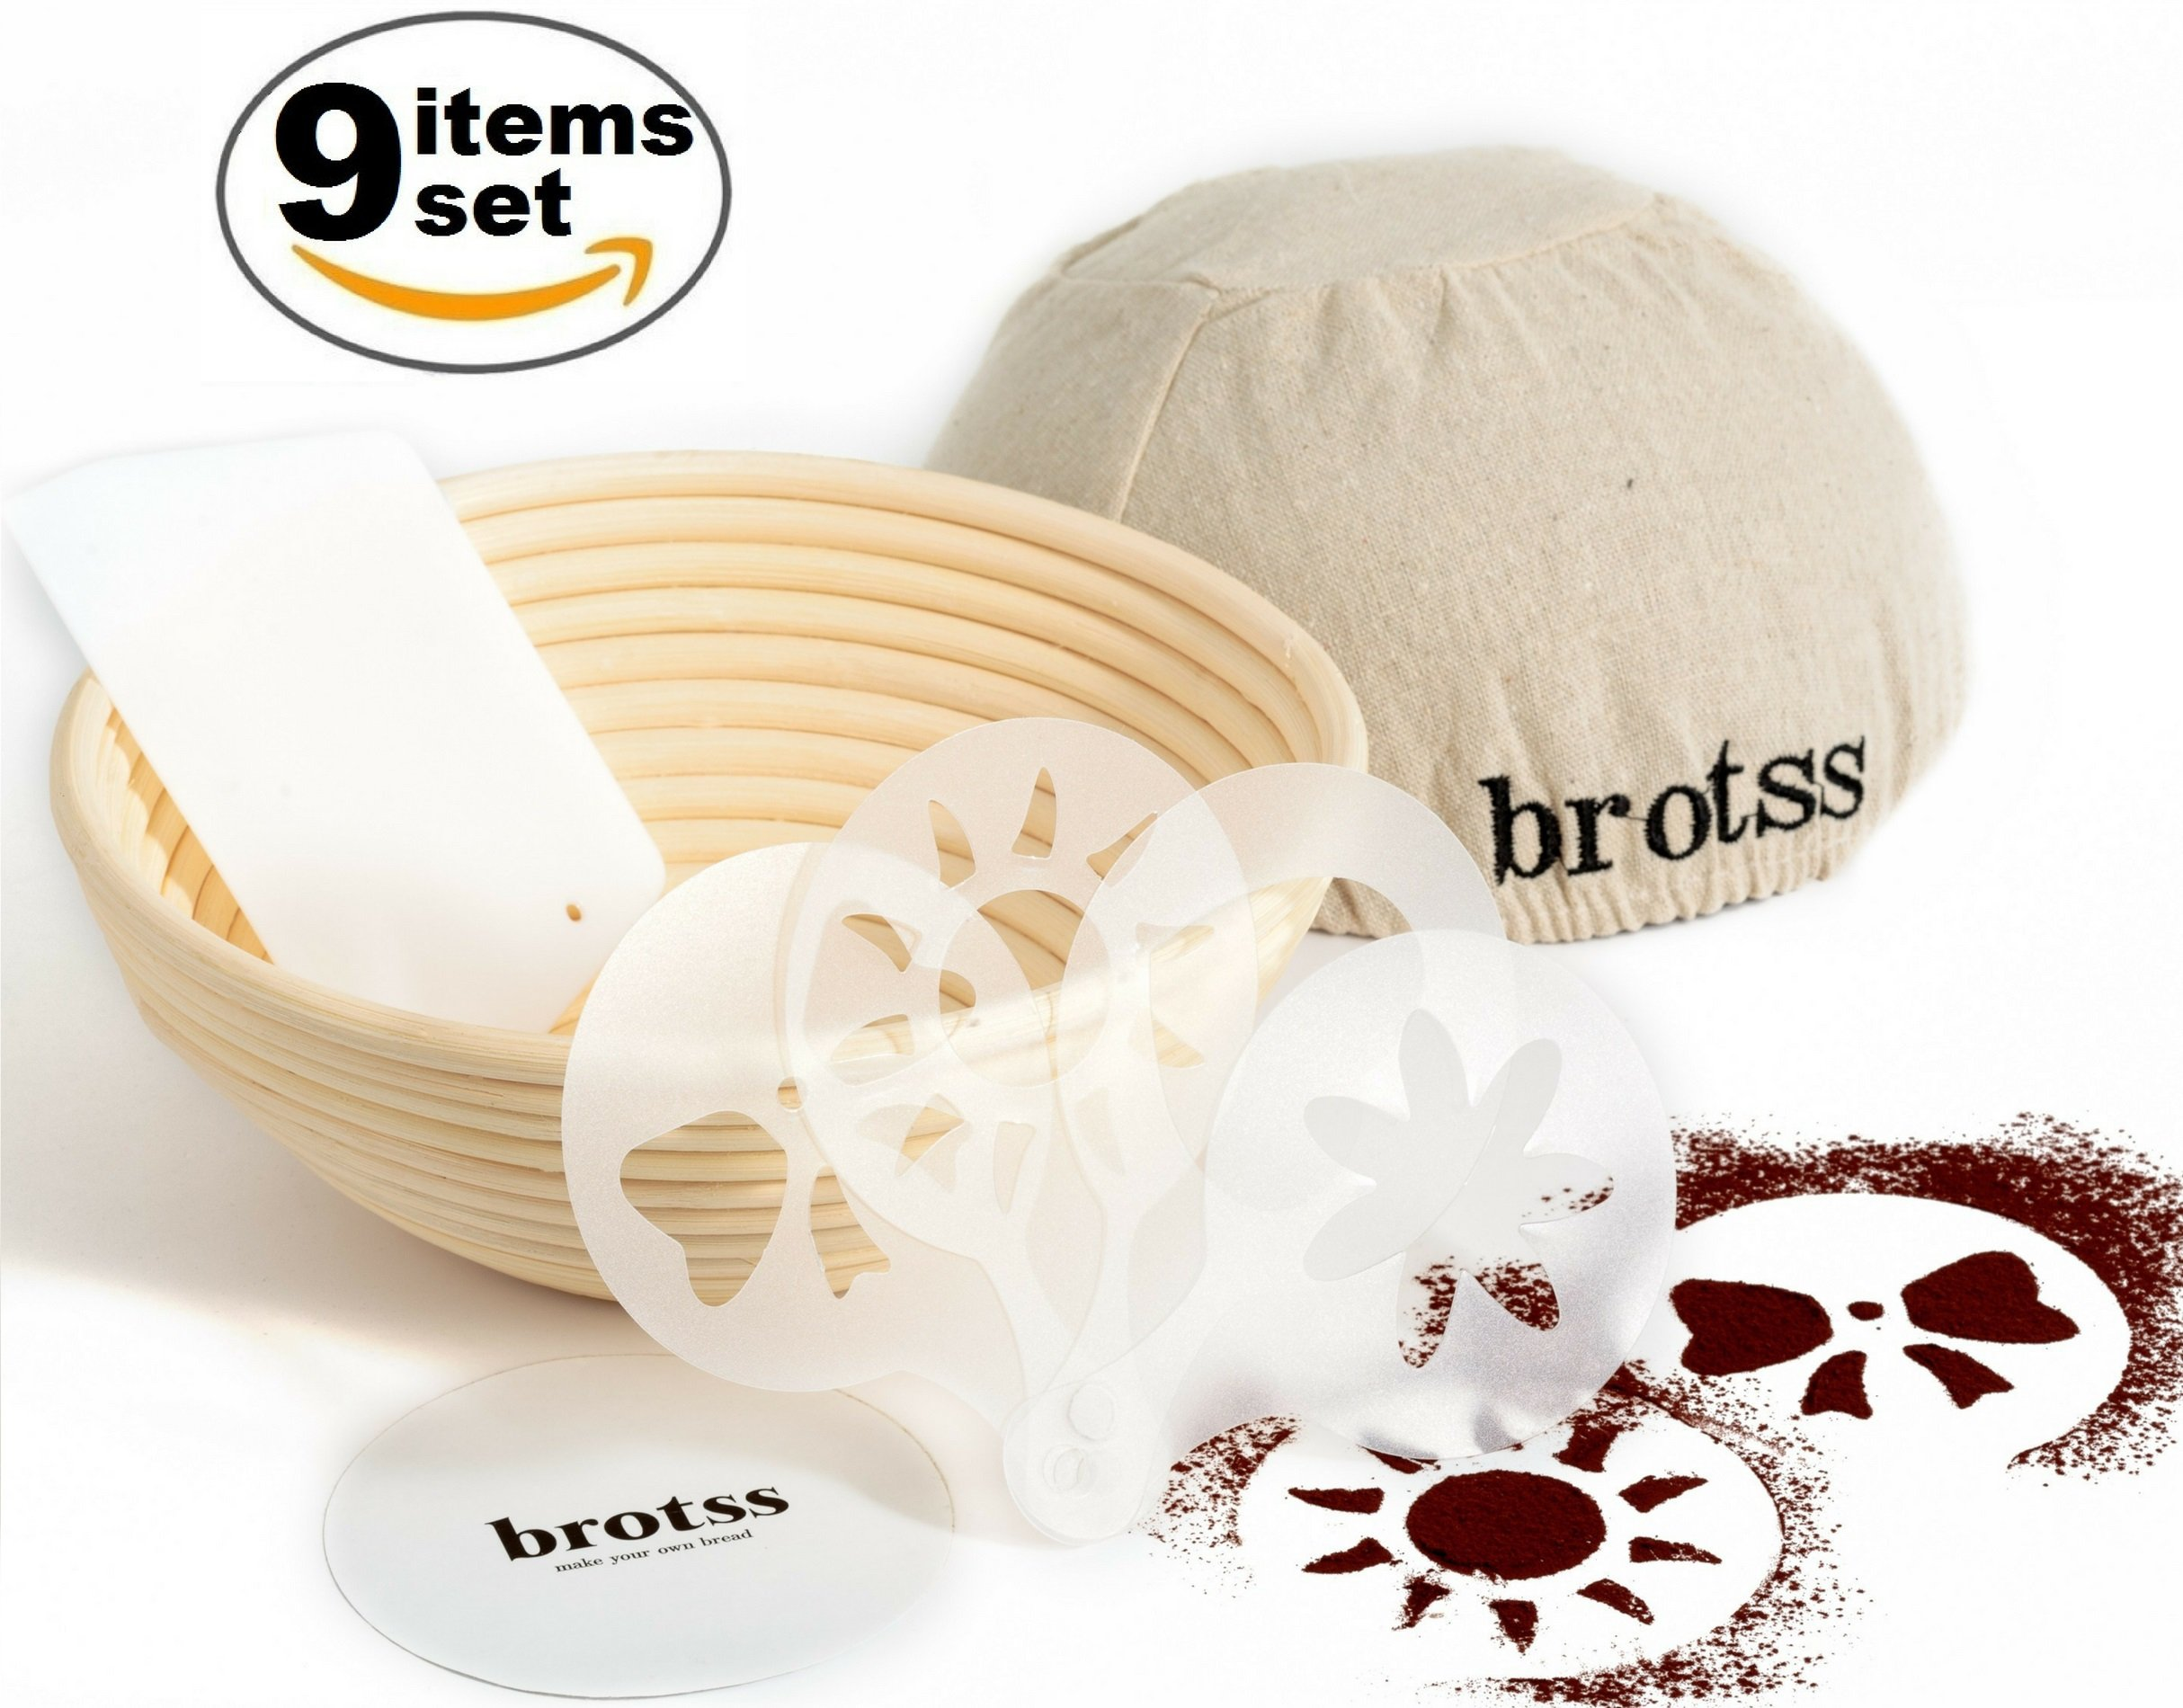 9 items Banneton Proofing Basket Set w/Artisan Bread Stencils, Cloth Liner Linen, Bowl Scraper for All Bakers/Sourdough Recipe, Brotform Rising Making Round Baked Crispy Dough Crust Boules Loaf Shape